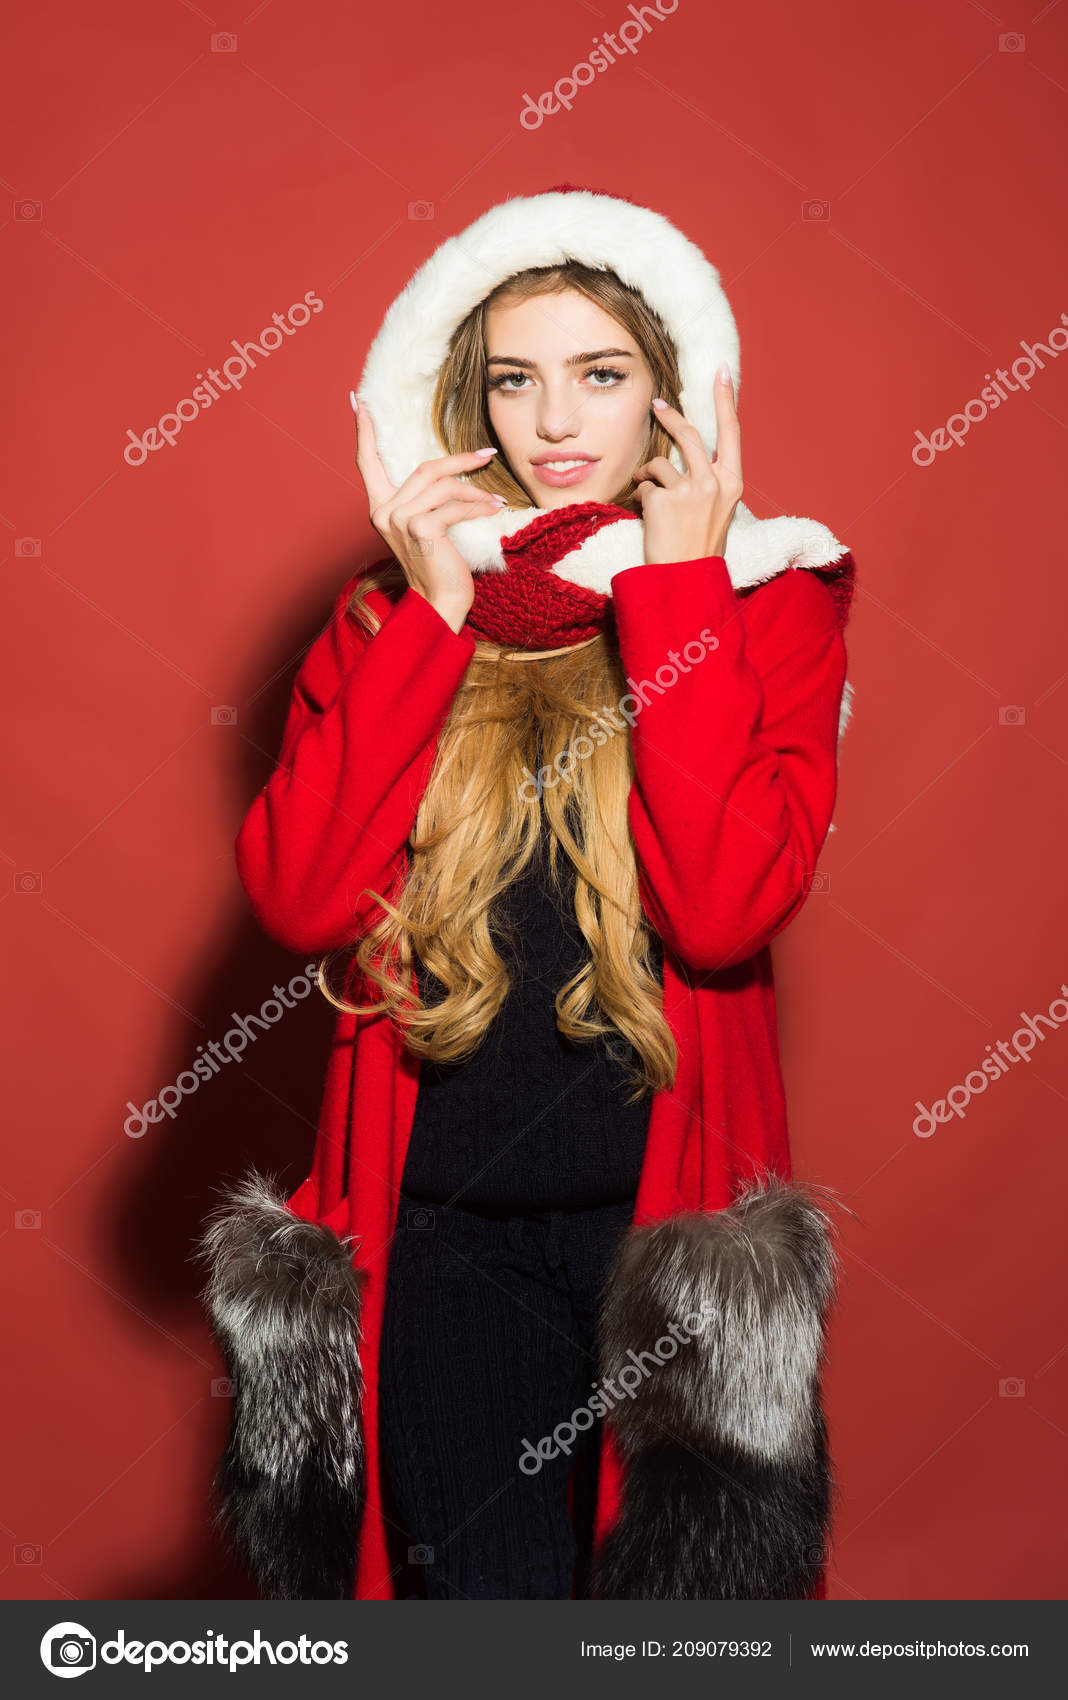 b74e00f31c Woman in santa costume with pretty face. Happy girl celebrate new year on  red background. Christmas woman in red hat. Xmas party and winter holiday.